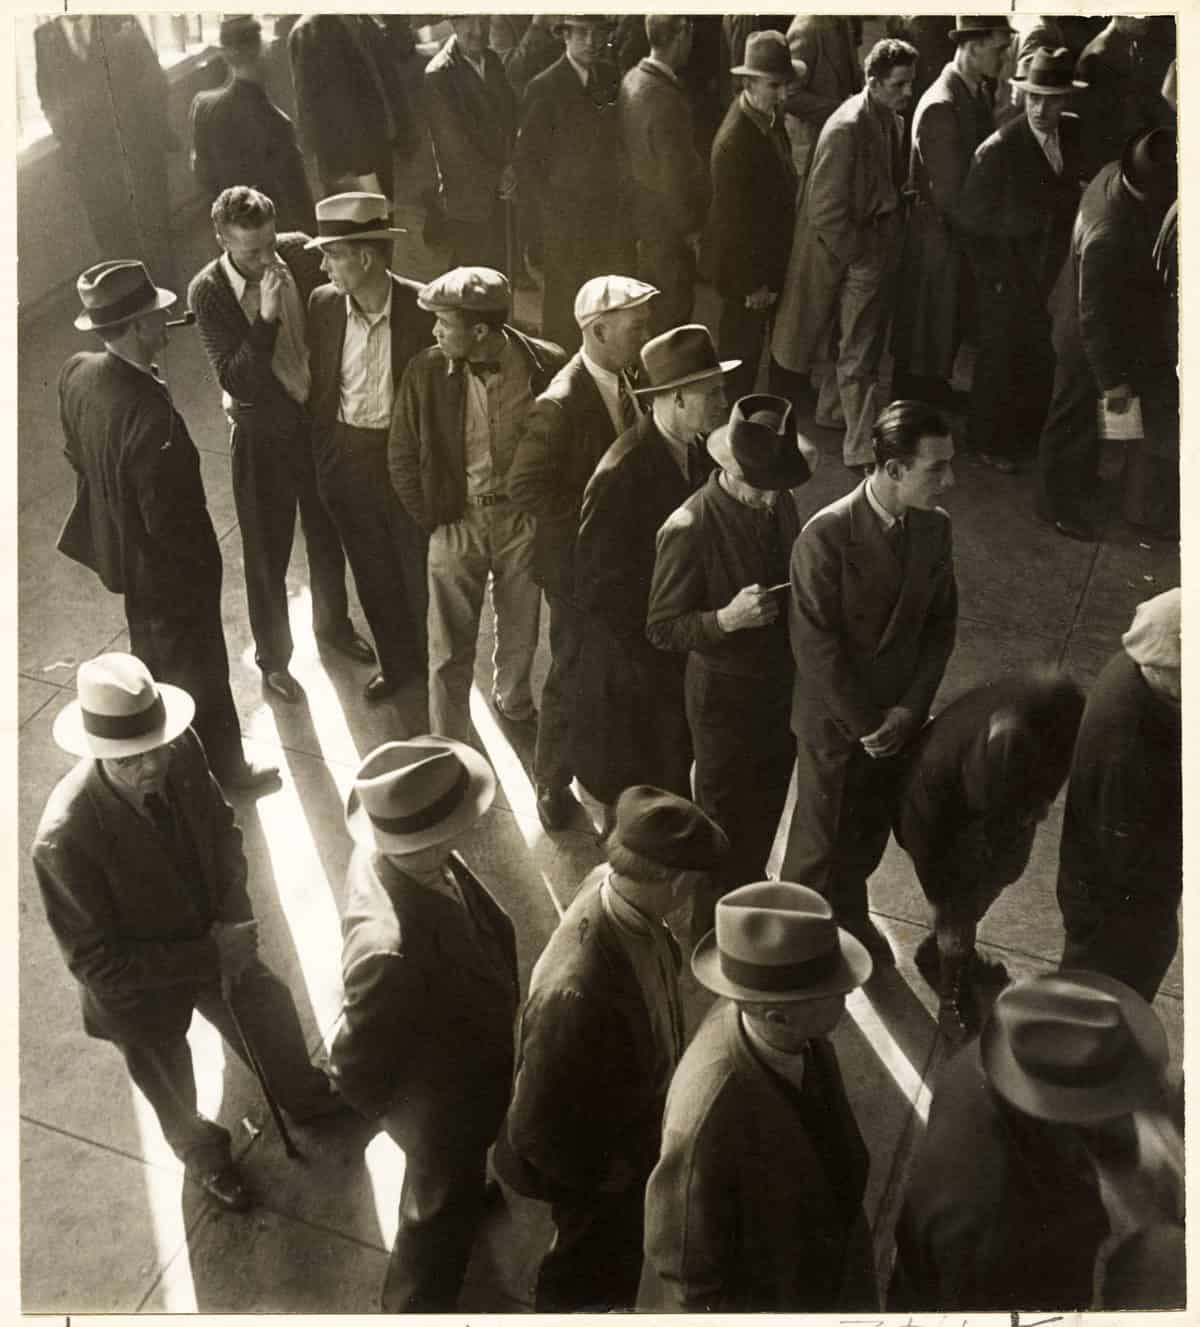 jobless men lined up during the great depression.